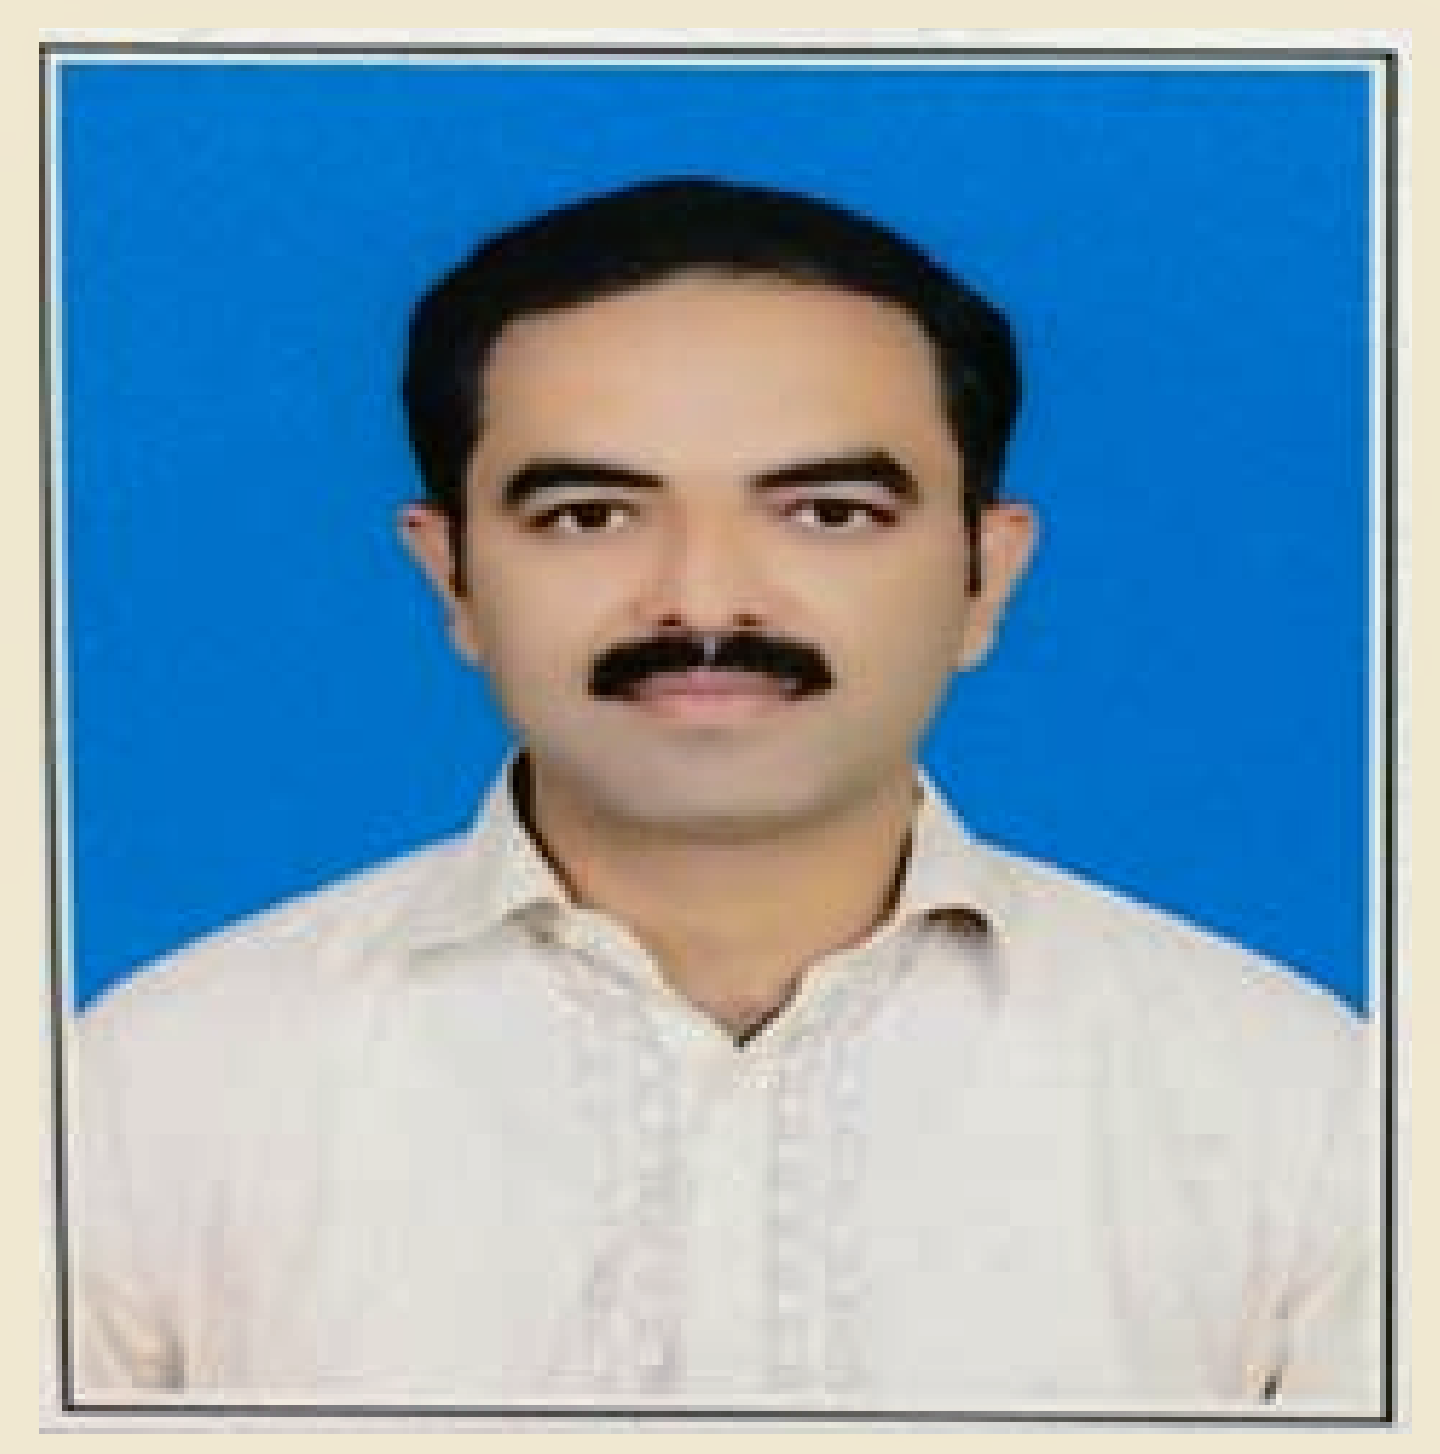 SHAHID MAHMOOD ISO9001, Technical Support, Industrial Engineering, Bill Of Materials (BOM) Analysis, Quality And Reliability Testing, Bill Of Materials (BOM) Re-Engineering, Inspections, Urdu